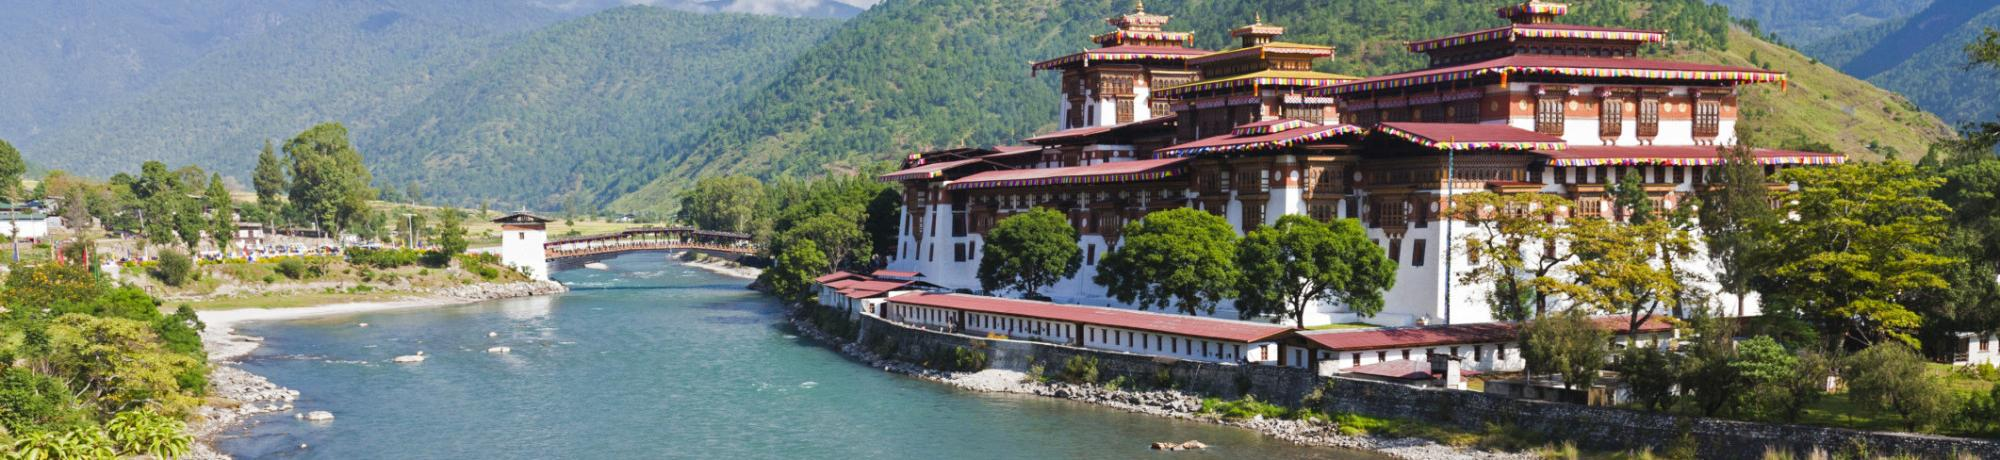 UC Davis Study Abroad, Summer Abroad Bhutan, Introduction to Geographic Information Systems Program, Header Image, Overview Page